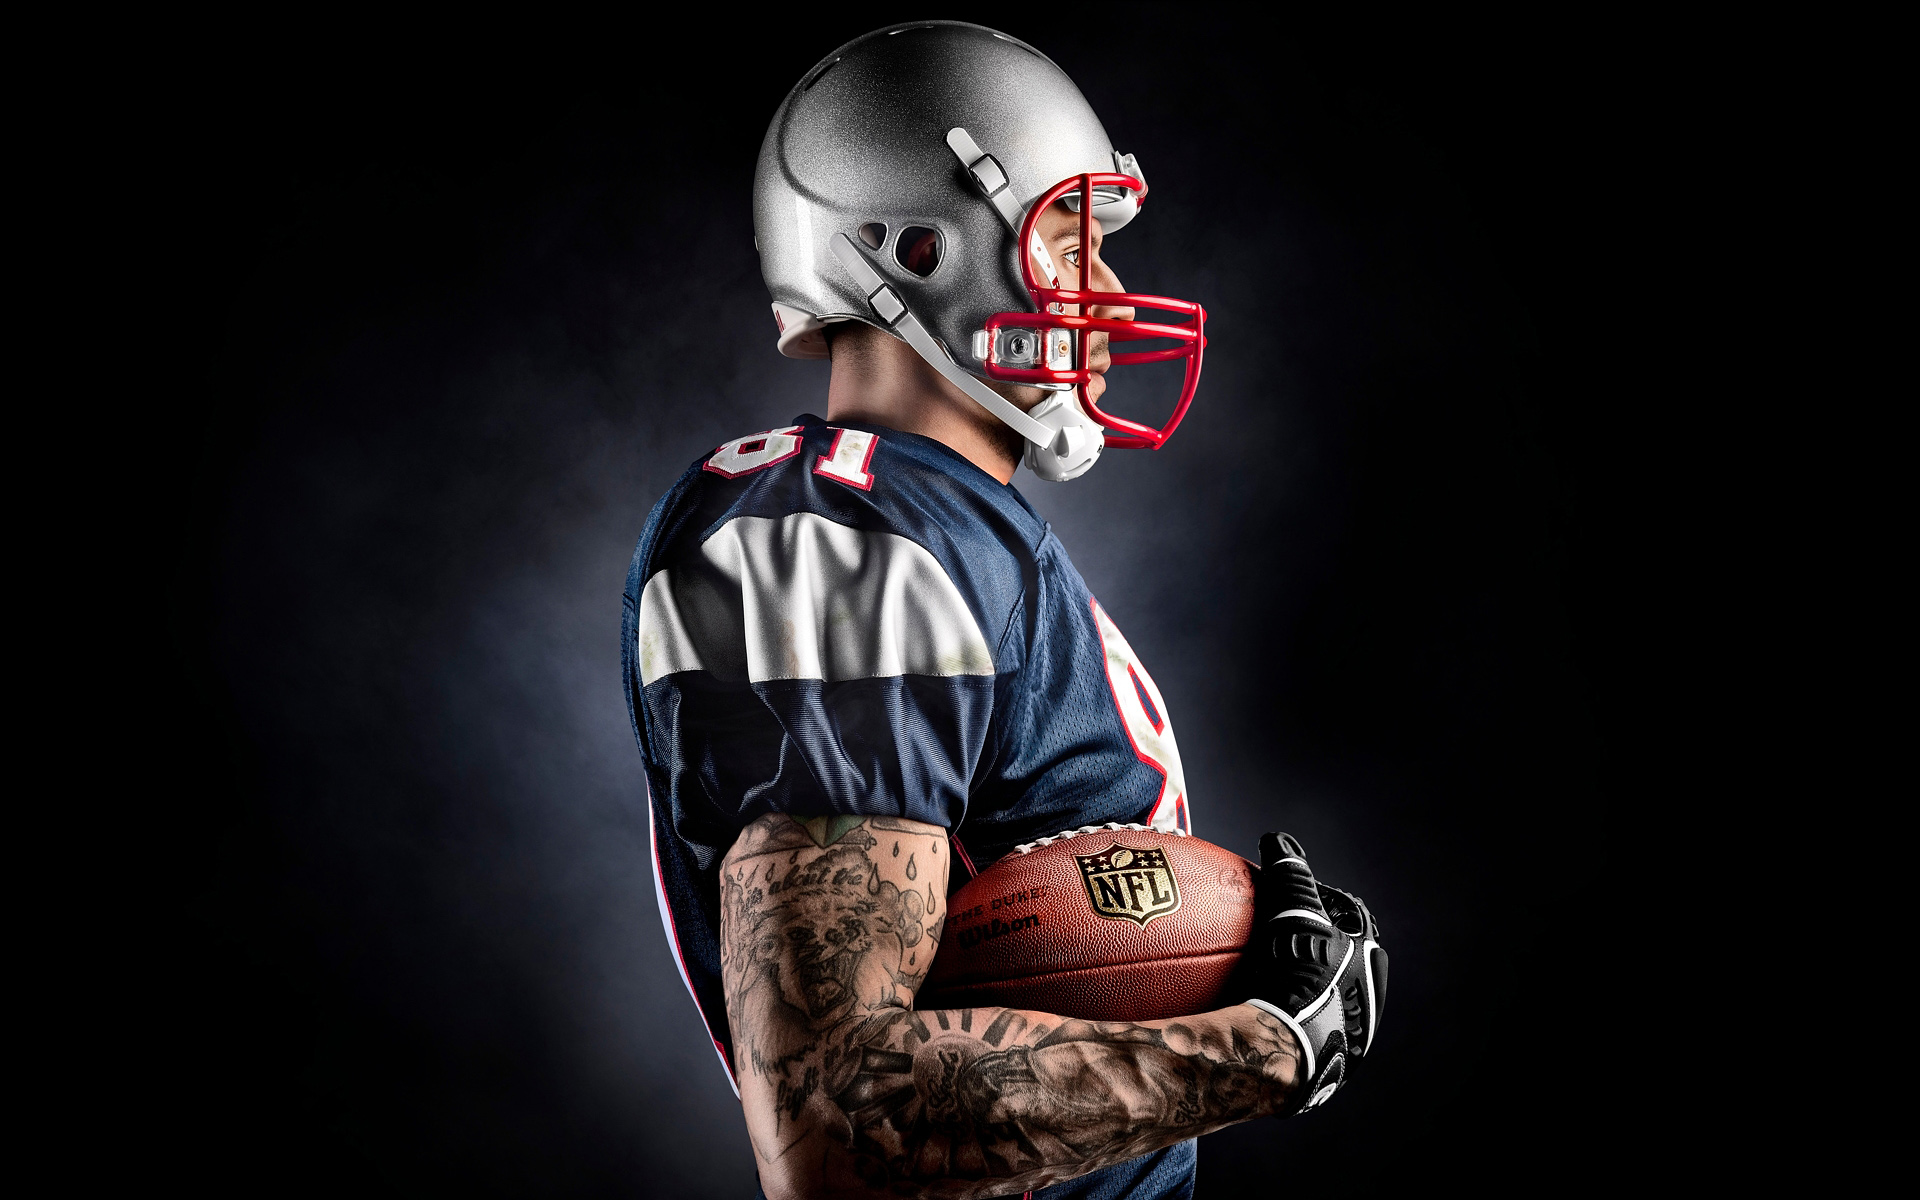 Aaron Hernandez by athlete photographer Blair Bunting